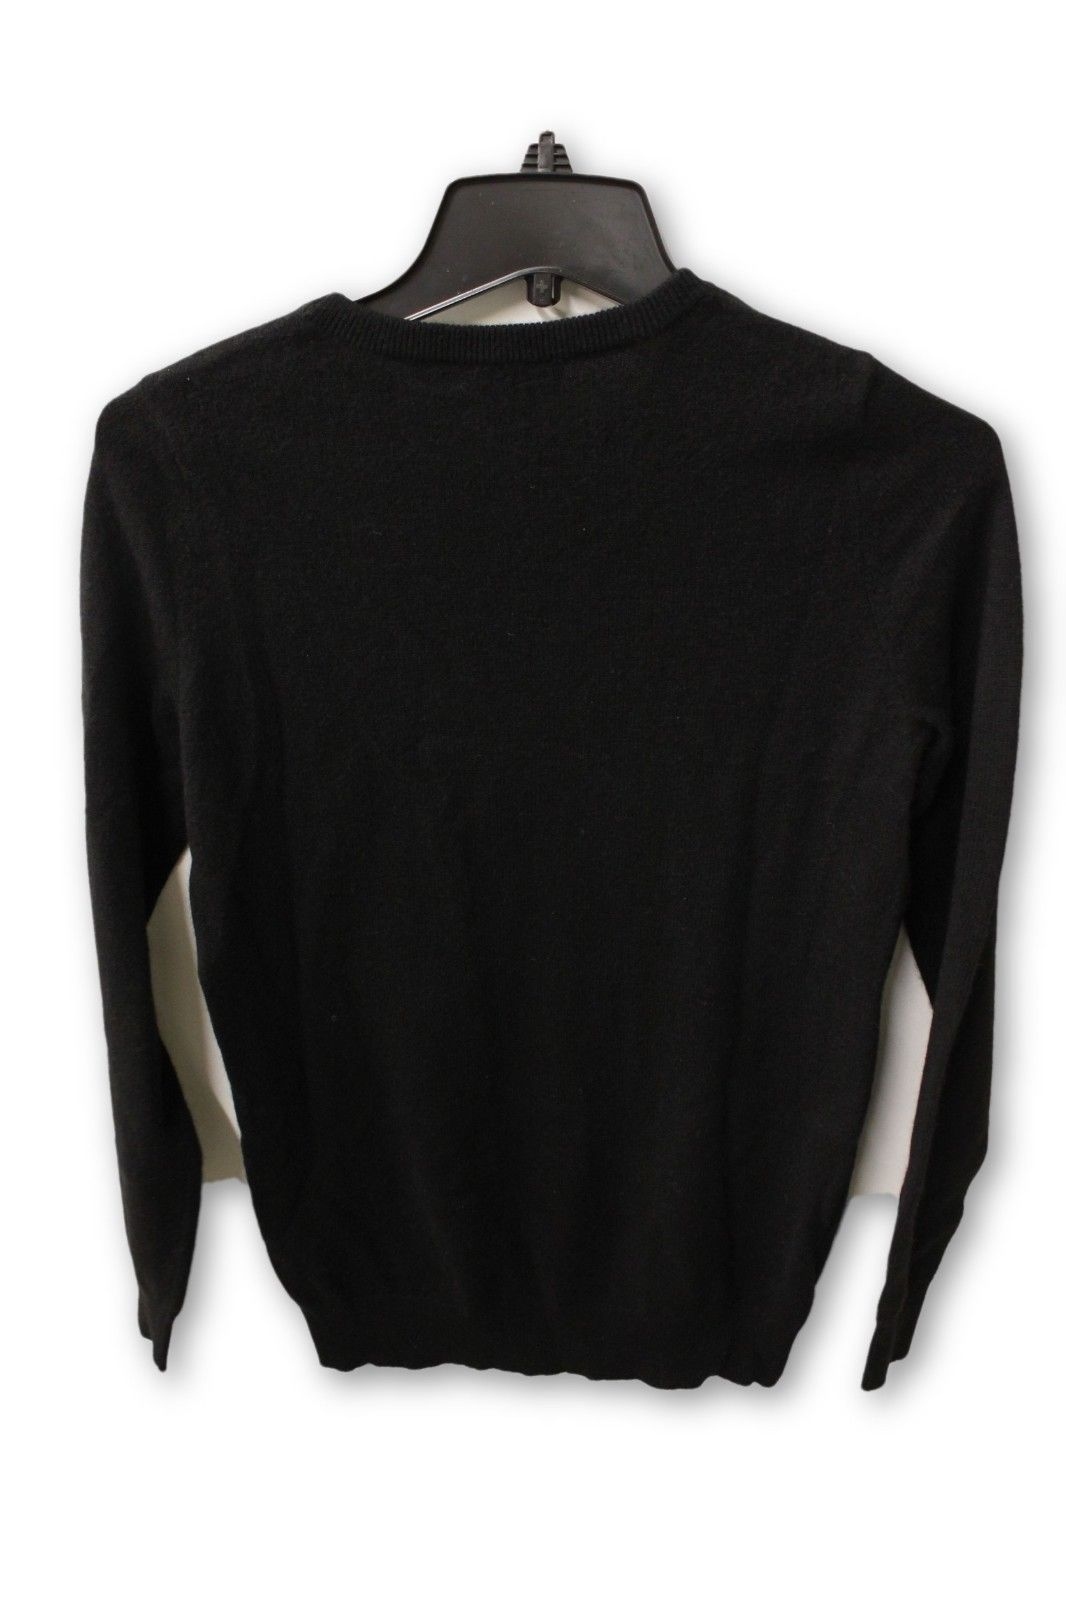 6ad65f0380 C by Bloomingdale's Women's Cashmere - Black Crew Neck Sweater S NWT –  Cheap Maggies